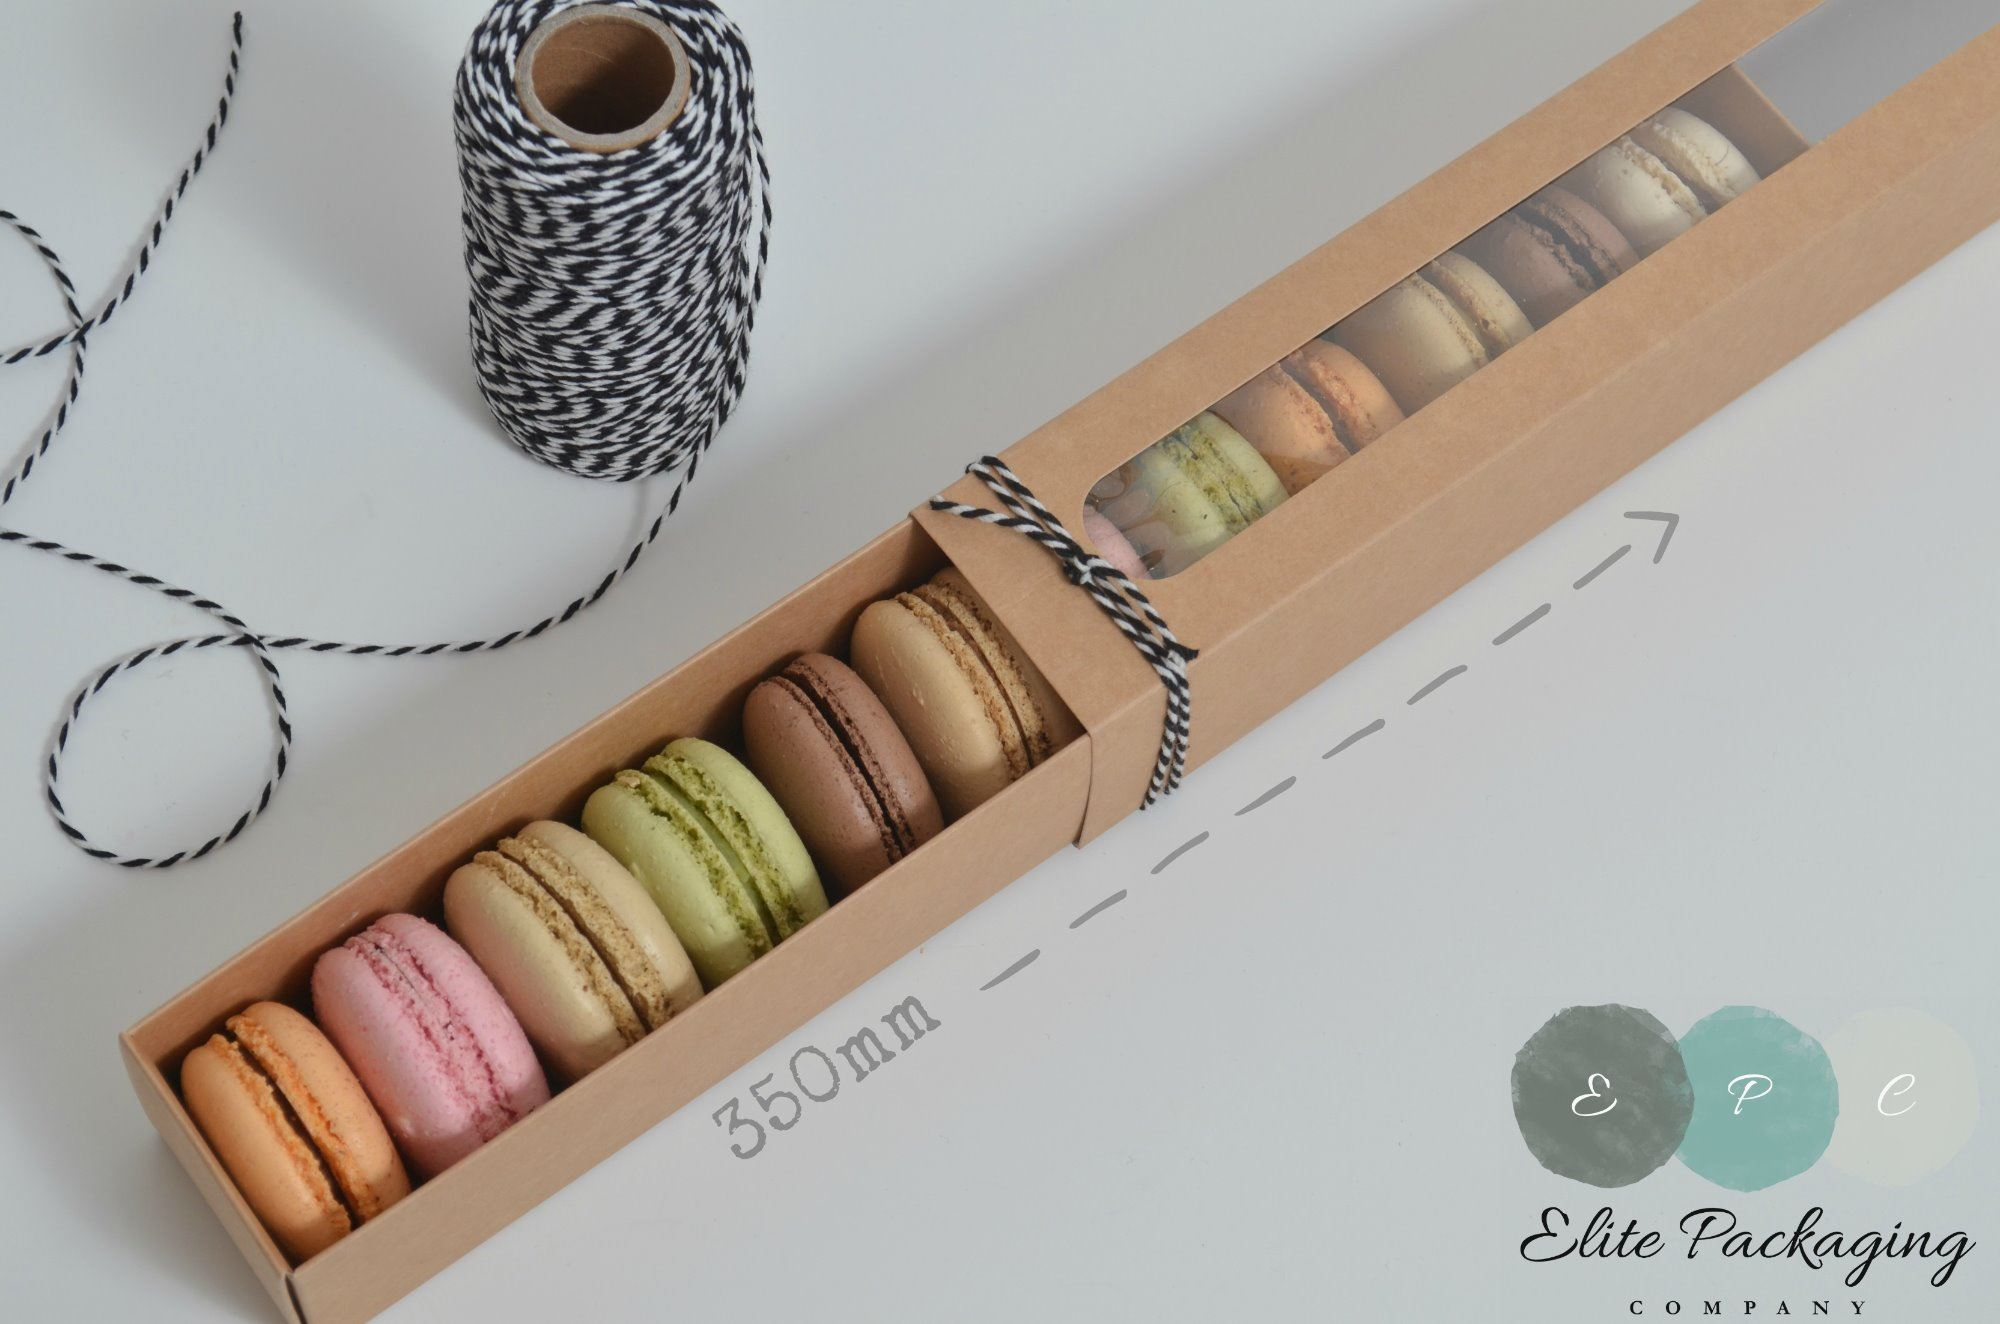 12pk macaron box promotional offer